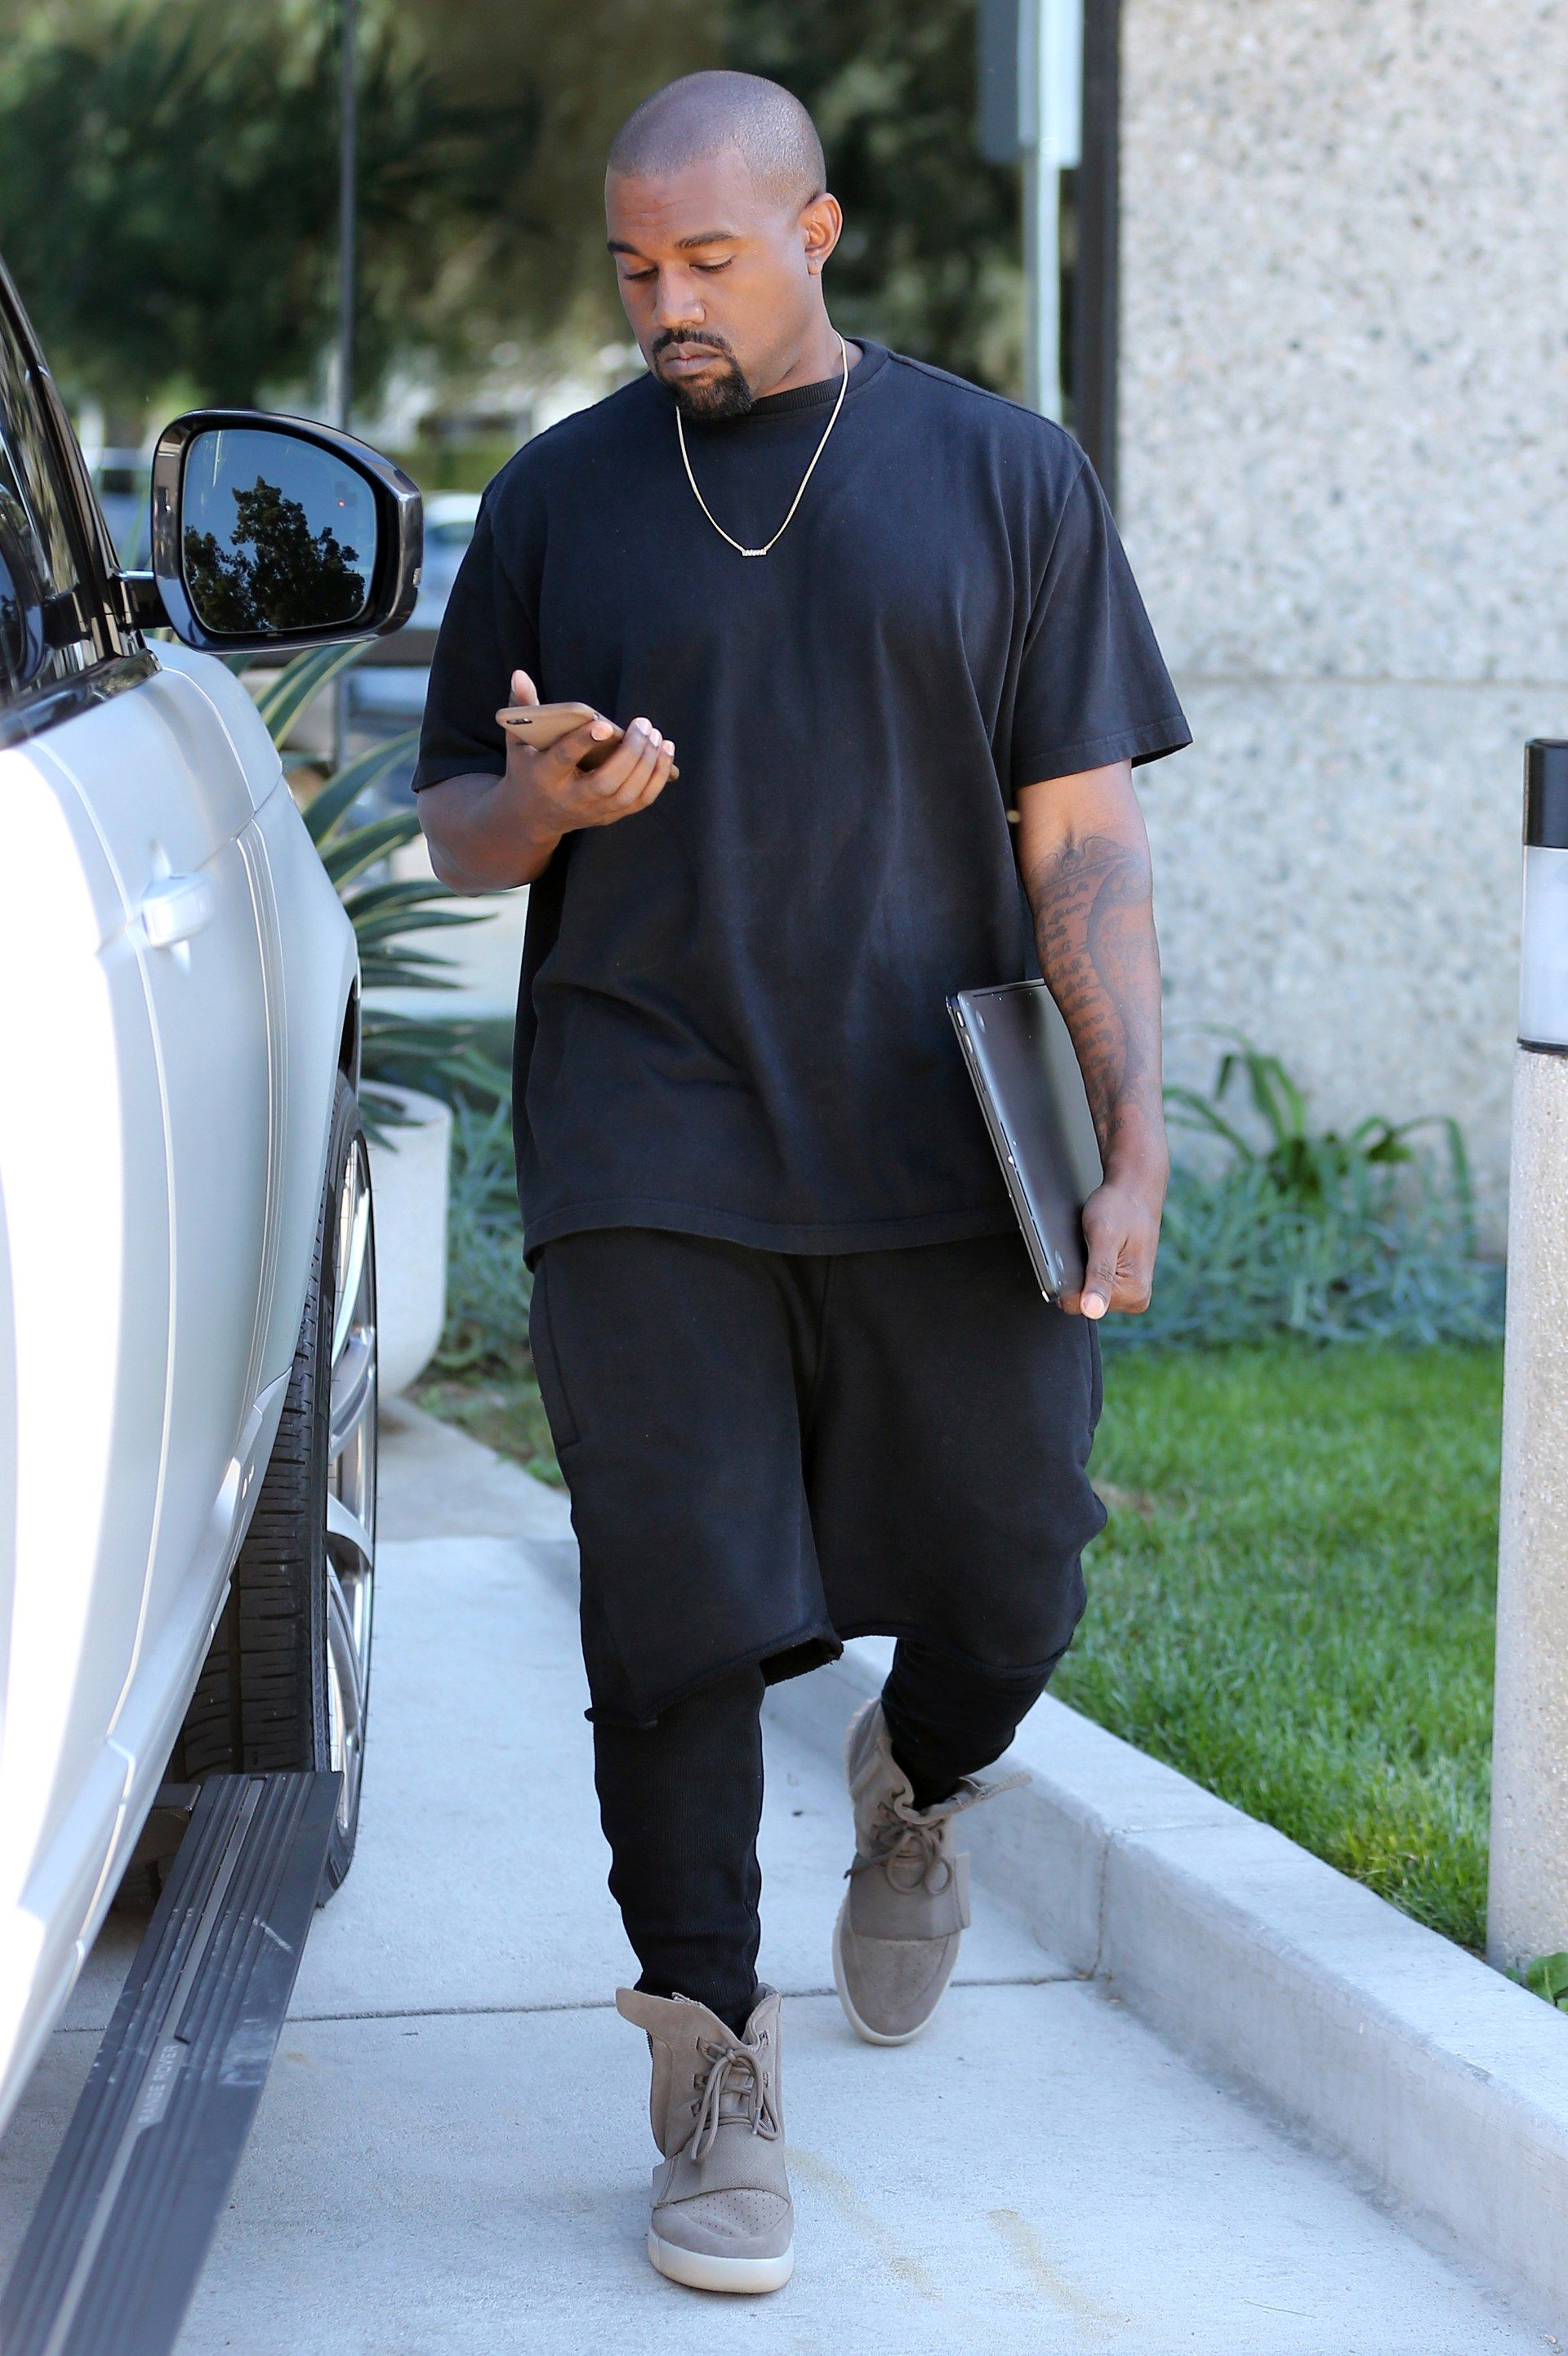 The Kanye West Look Book Kanye West Outfits Kanye West Style Mens Fashion Streetwear